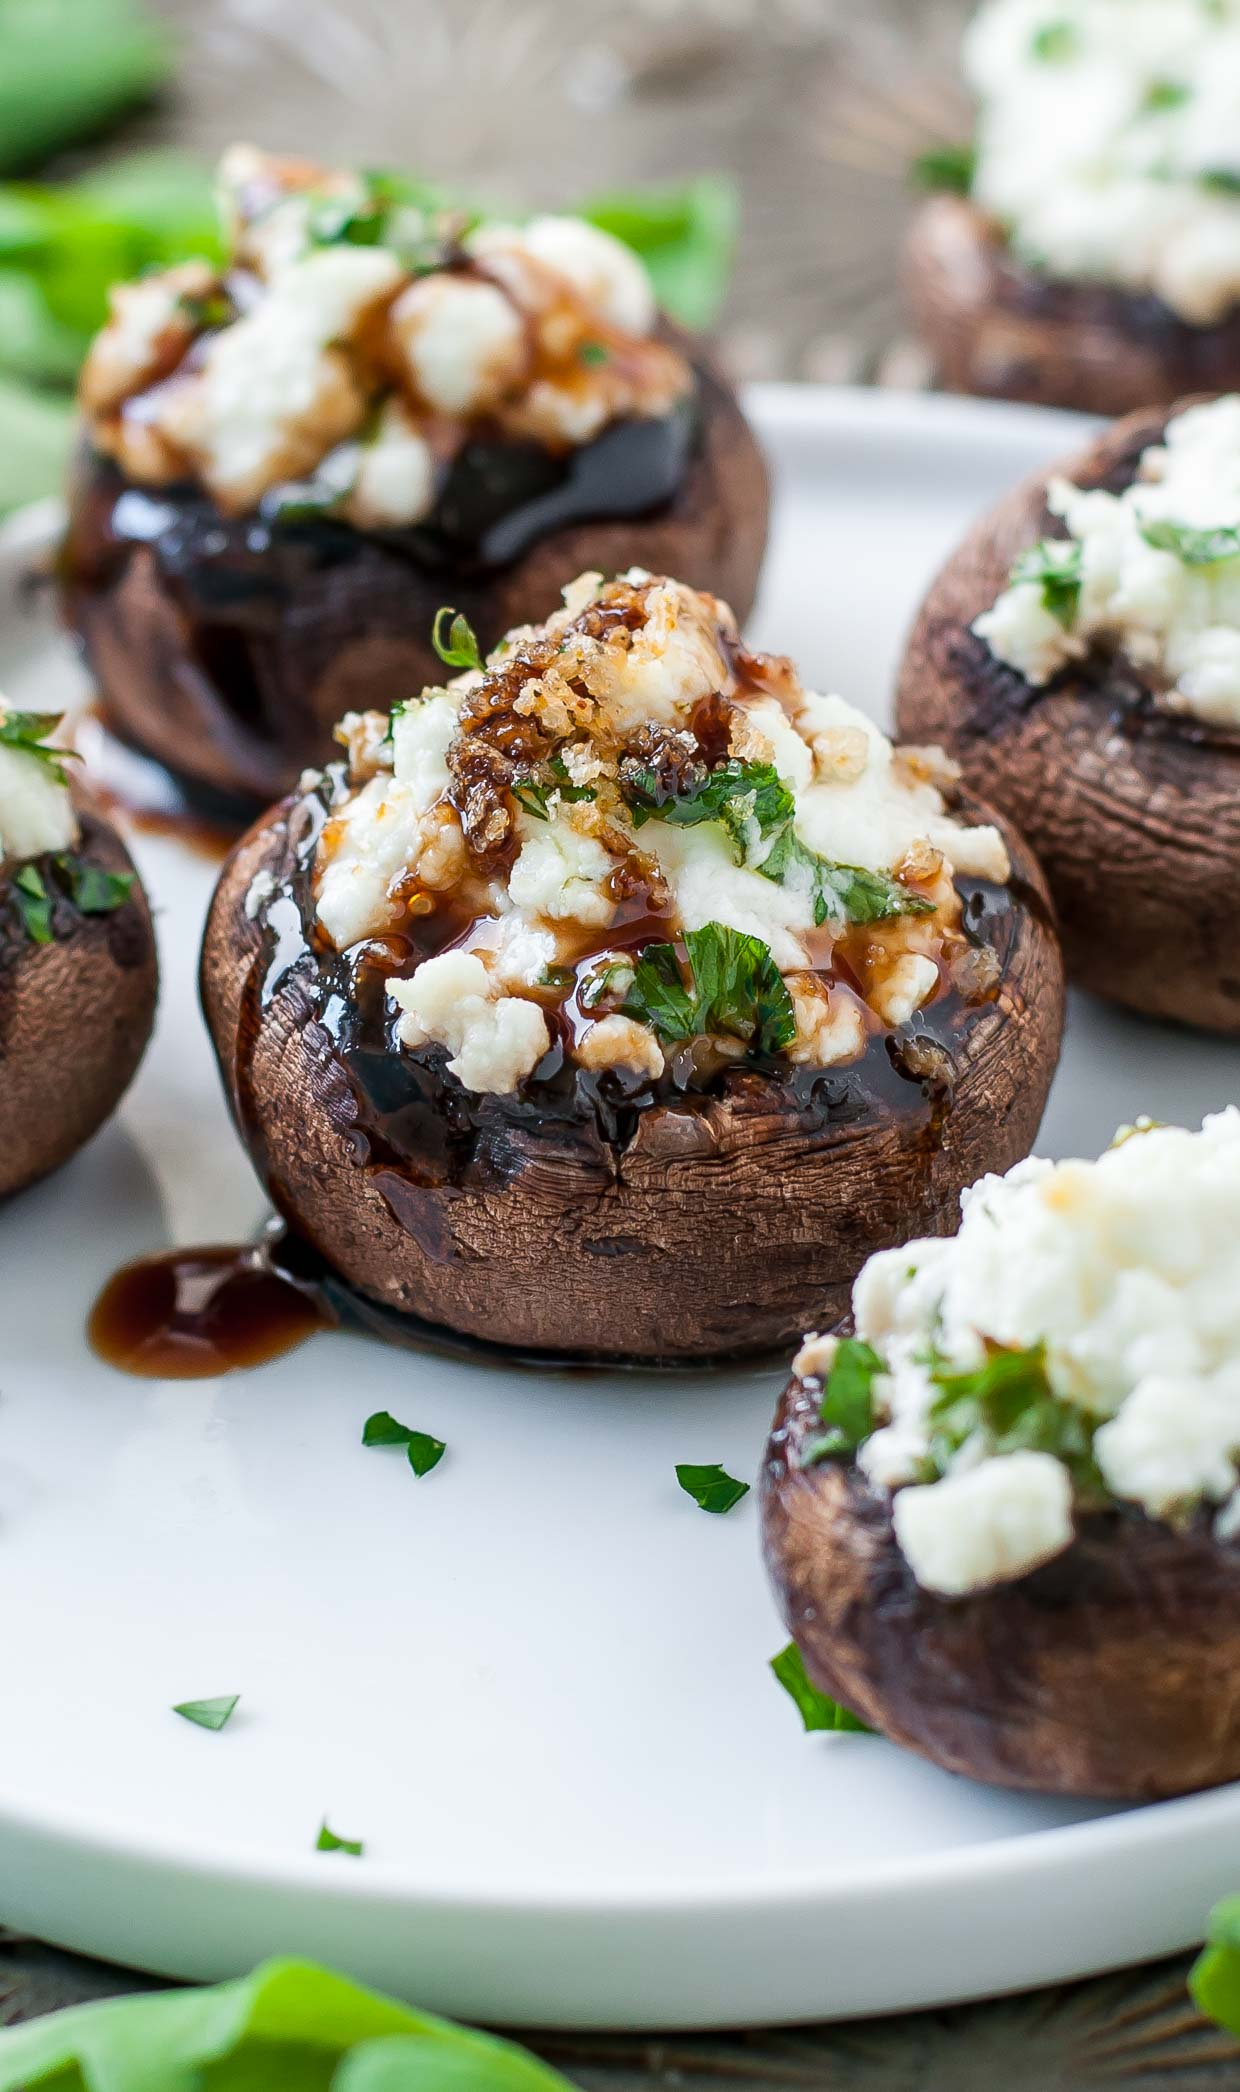 Easy Goat Cheese Stuffed Mushrooms make a tasty party appetizer!